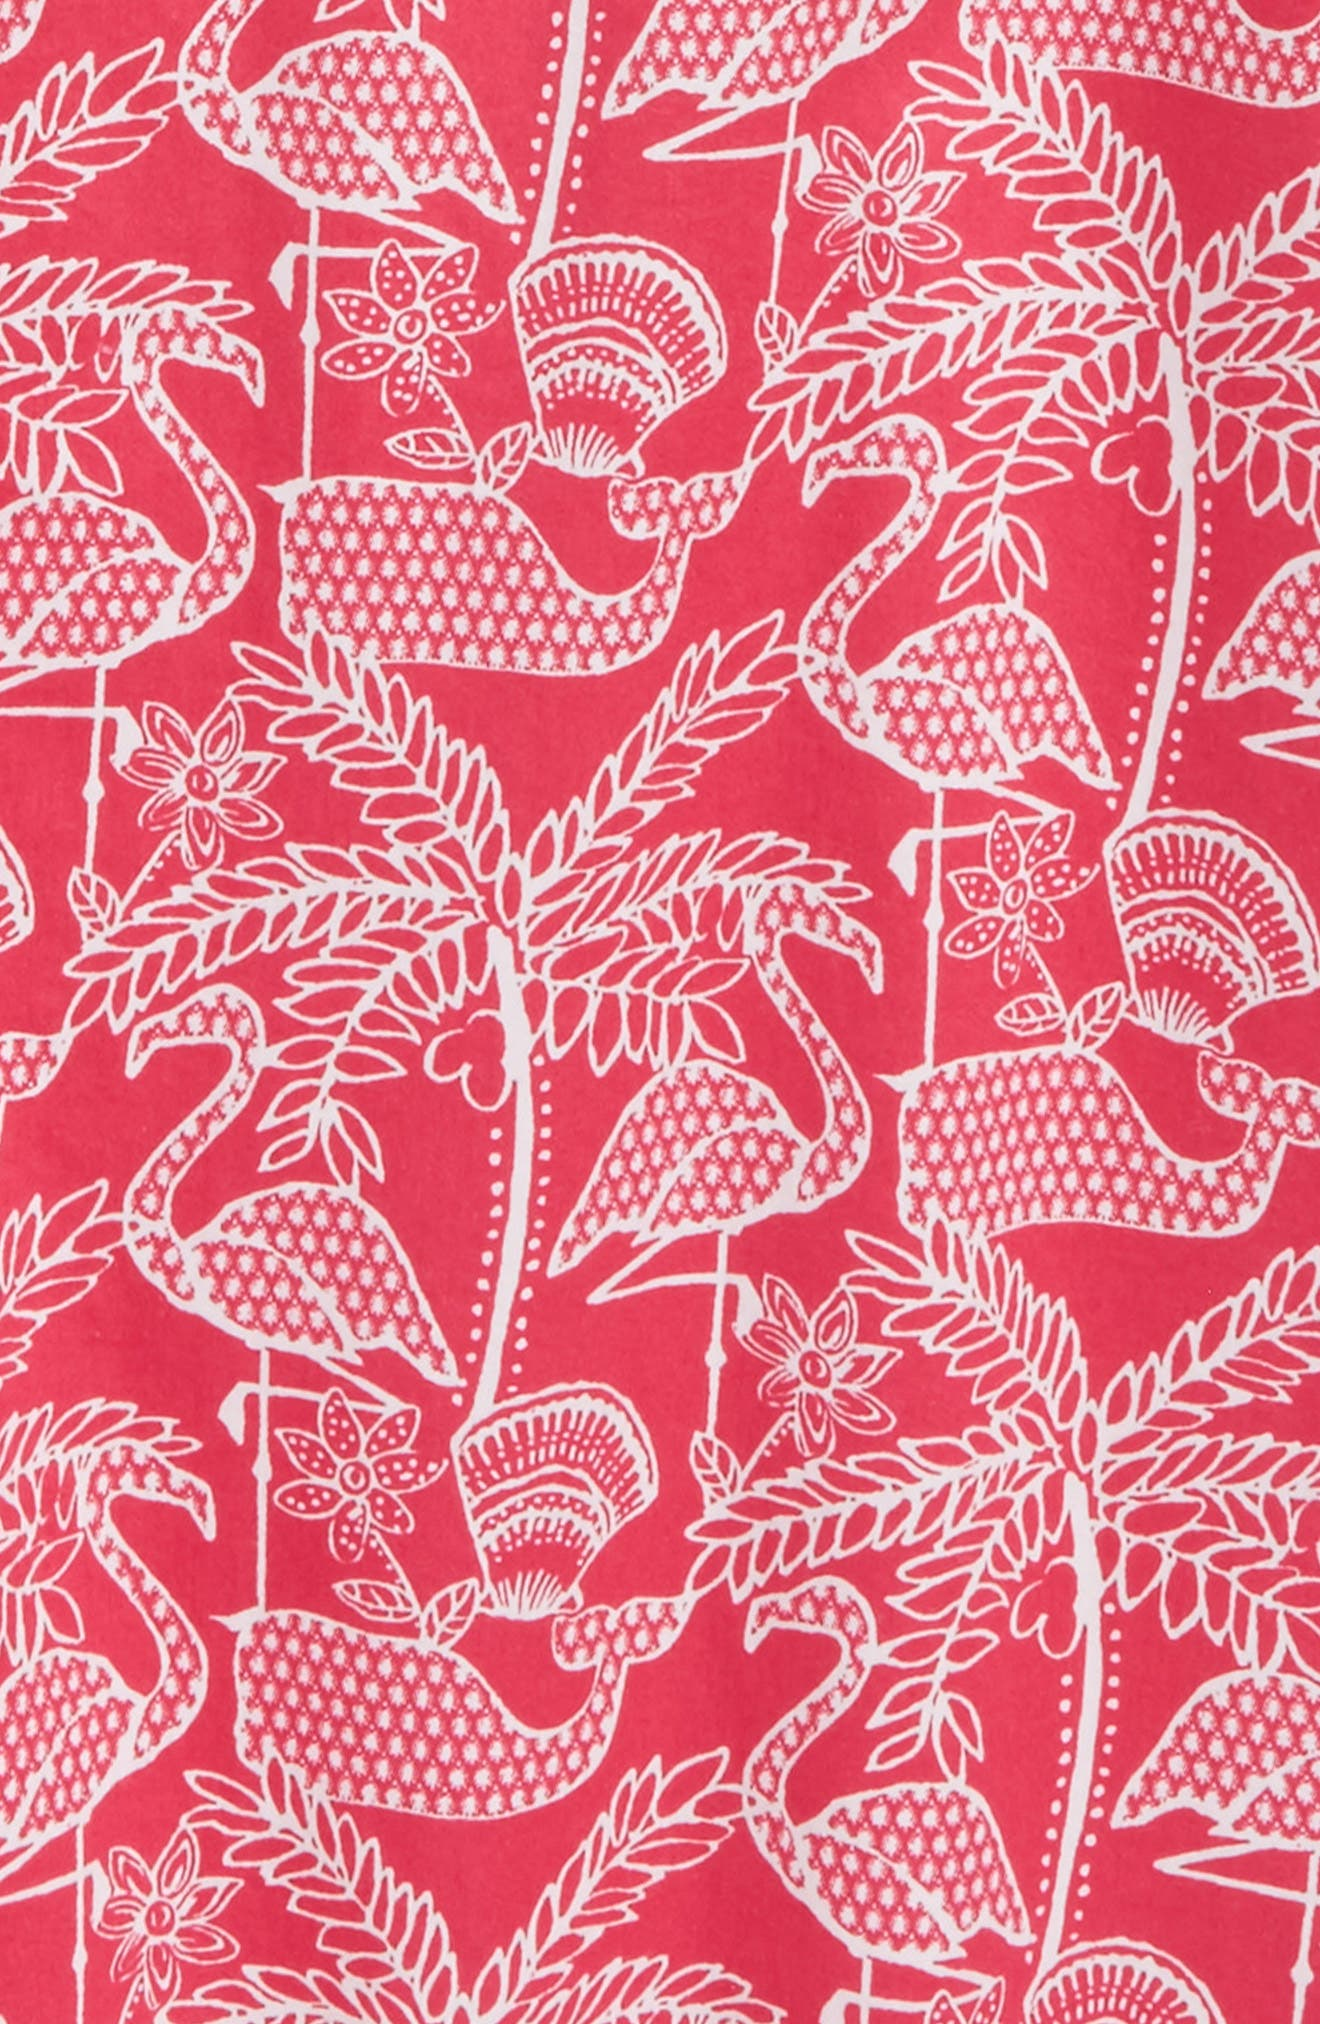 Flamingo Print Shift Dress,                             Alternate thumbnail 3, color,                             Rhododendron